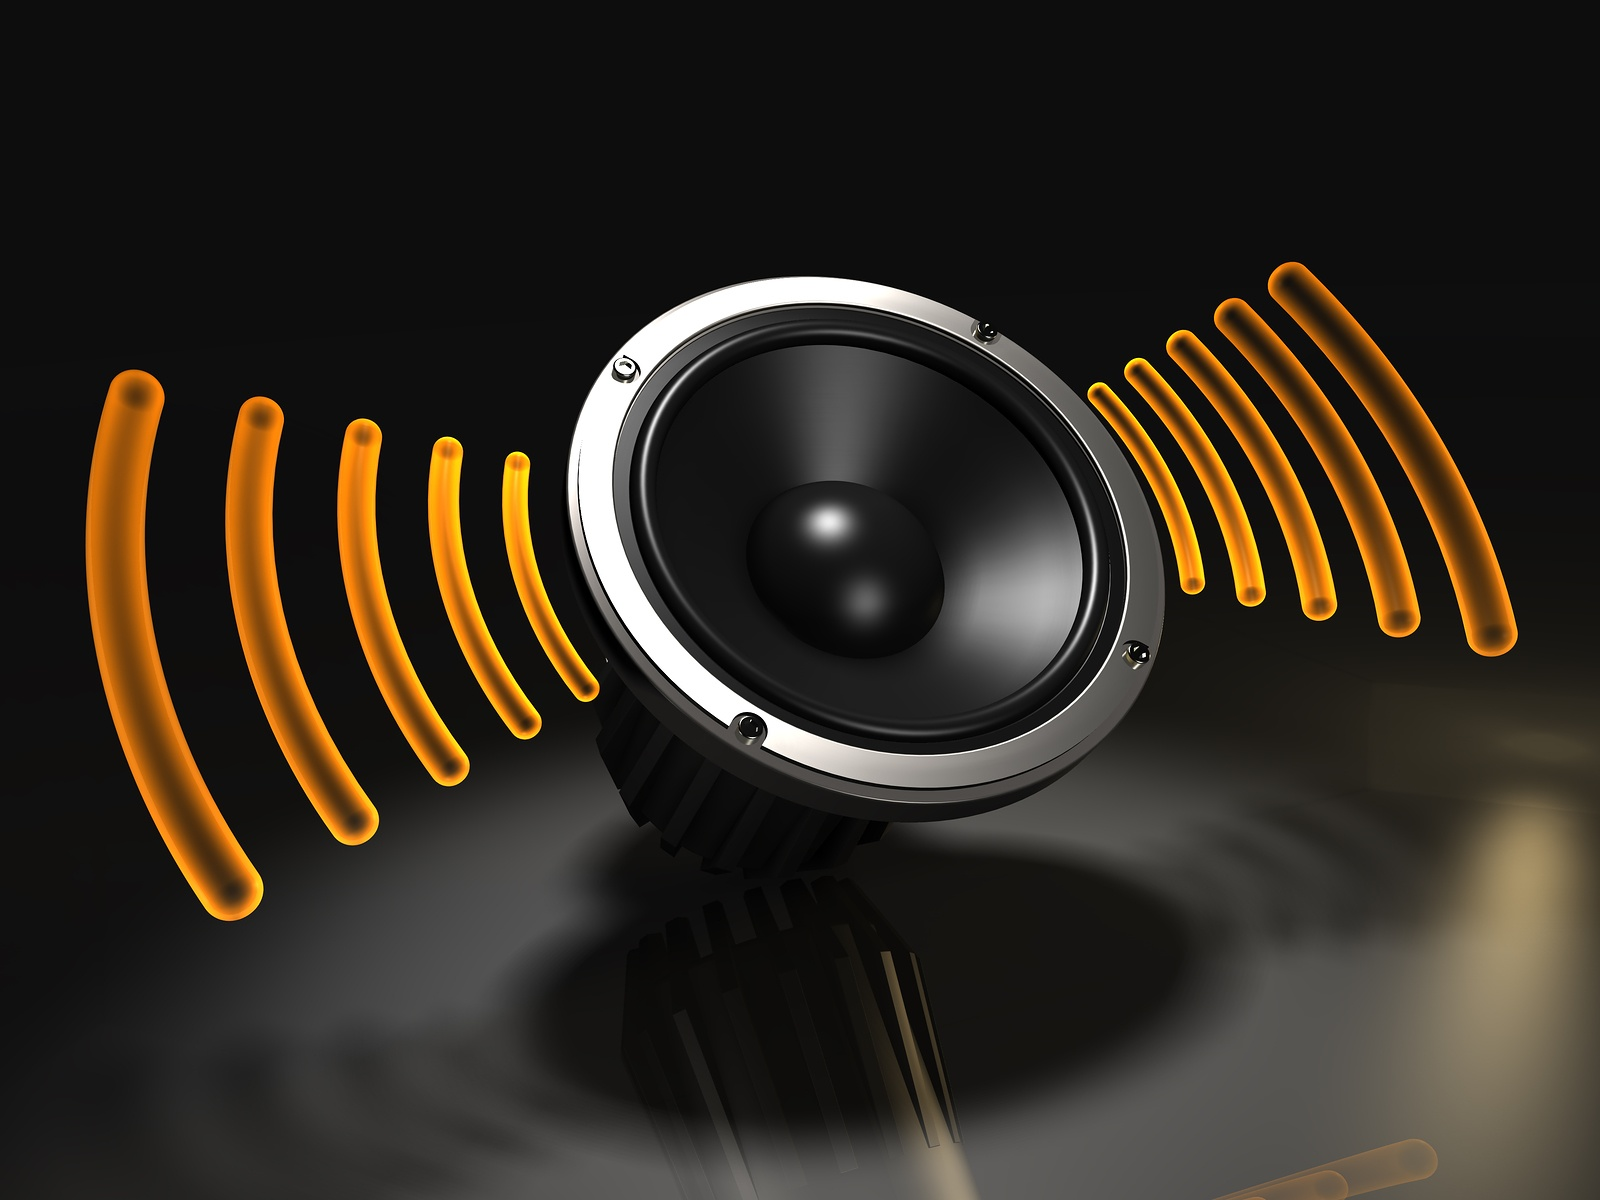 1600x1200 Sound Waves wallpaper music and dance wallpapers 1600x1200